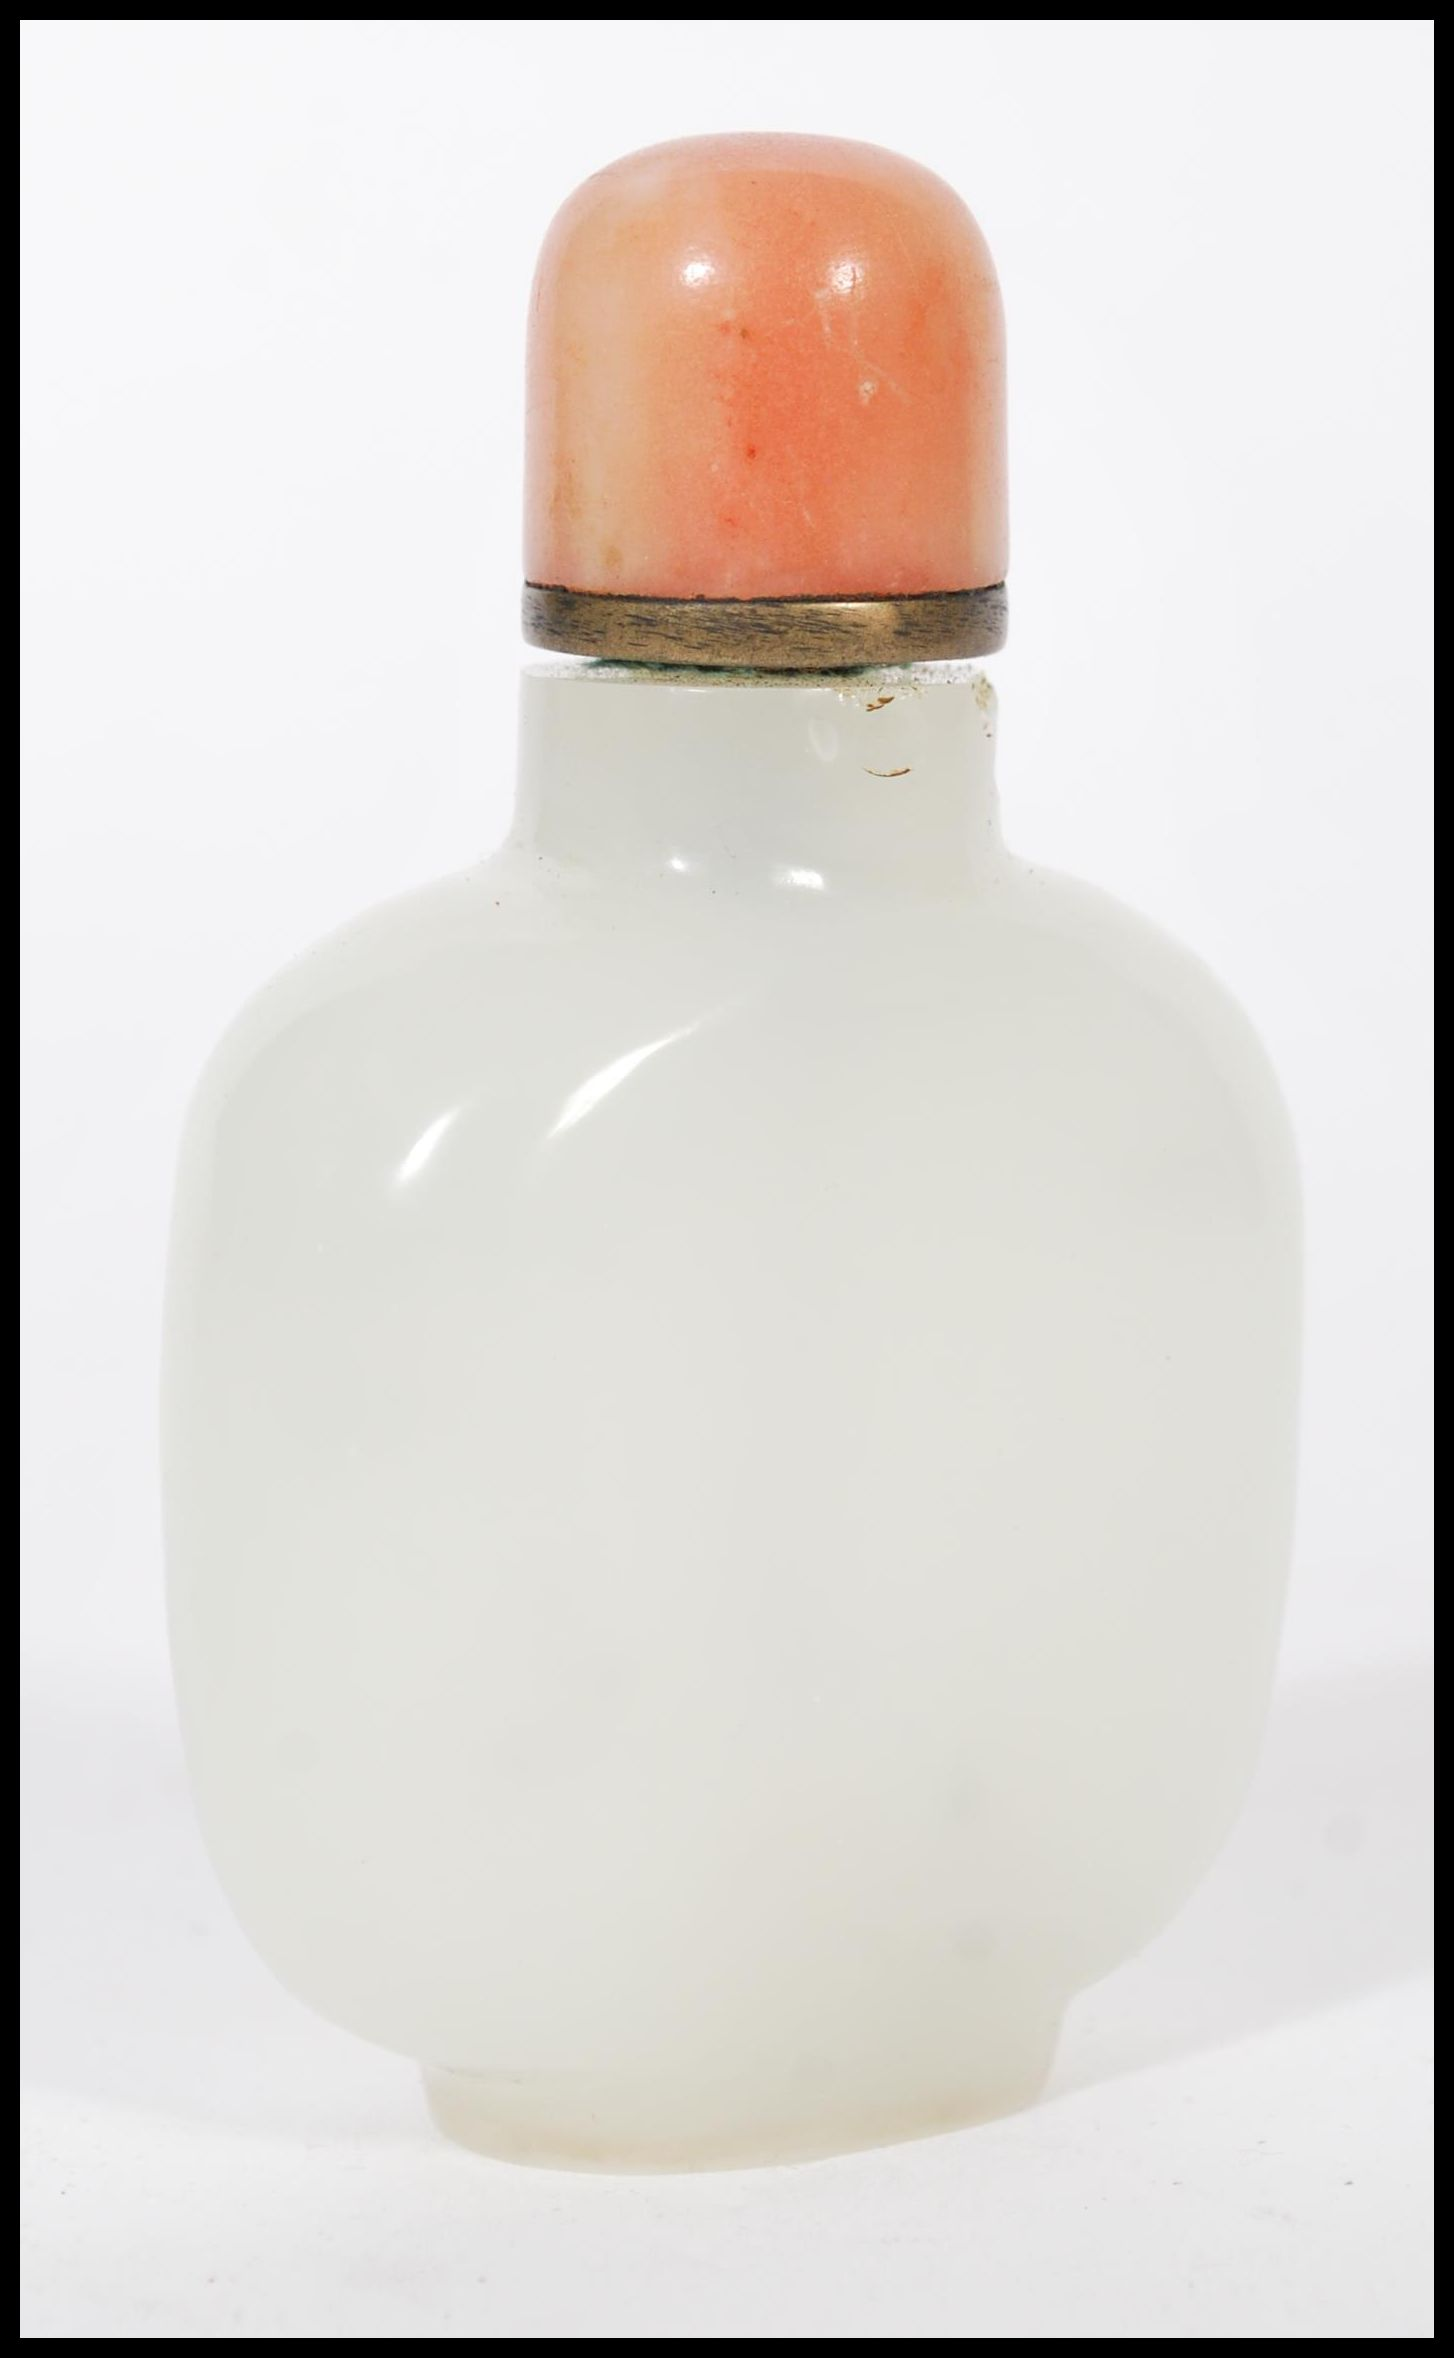 Lot 5 - A 19th century Chinese white / light green jade snuff bottle with red coral top complete with